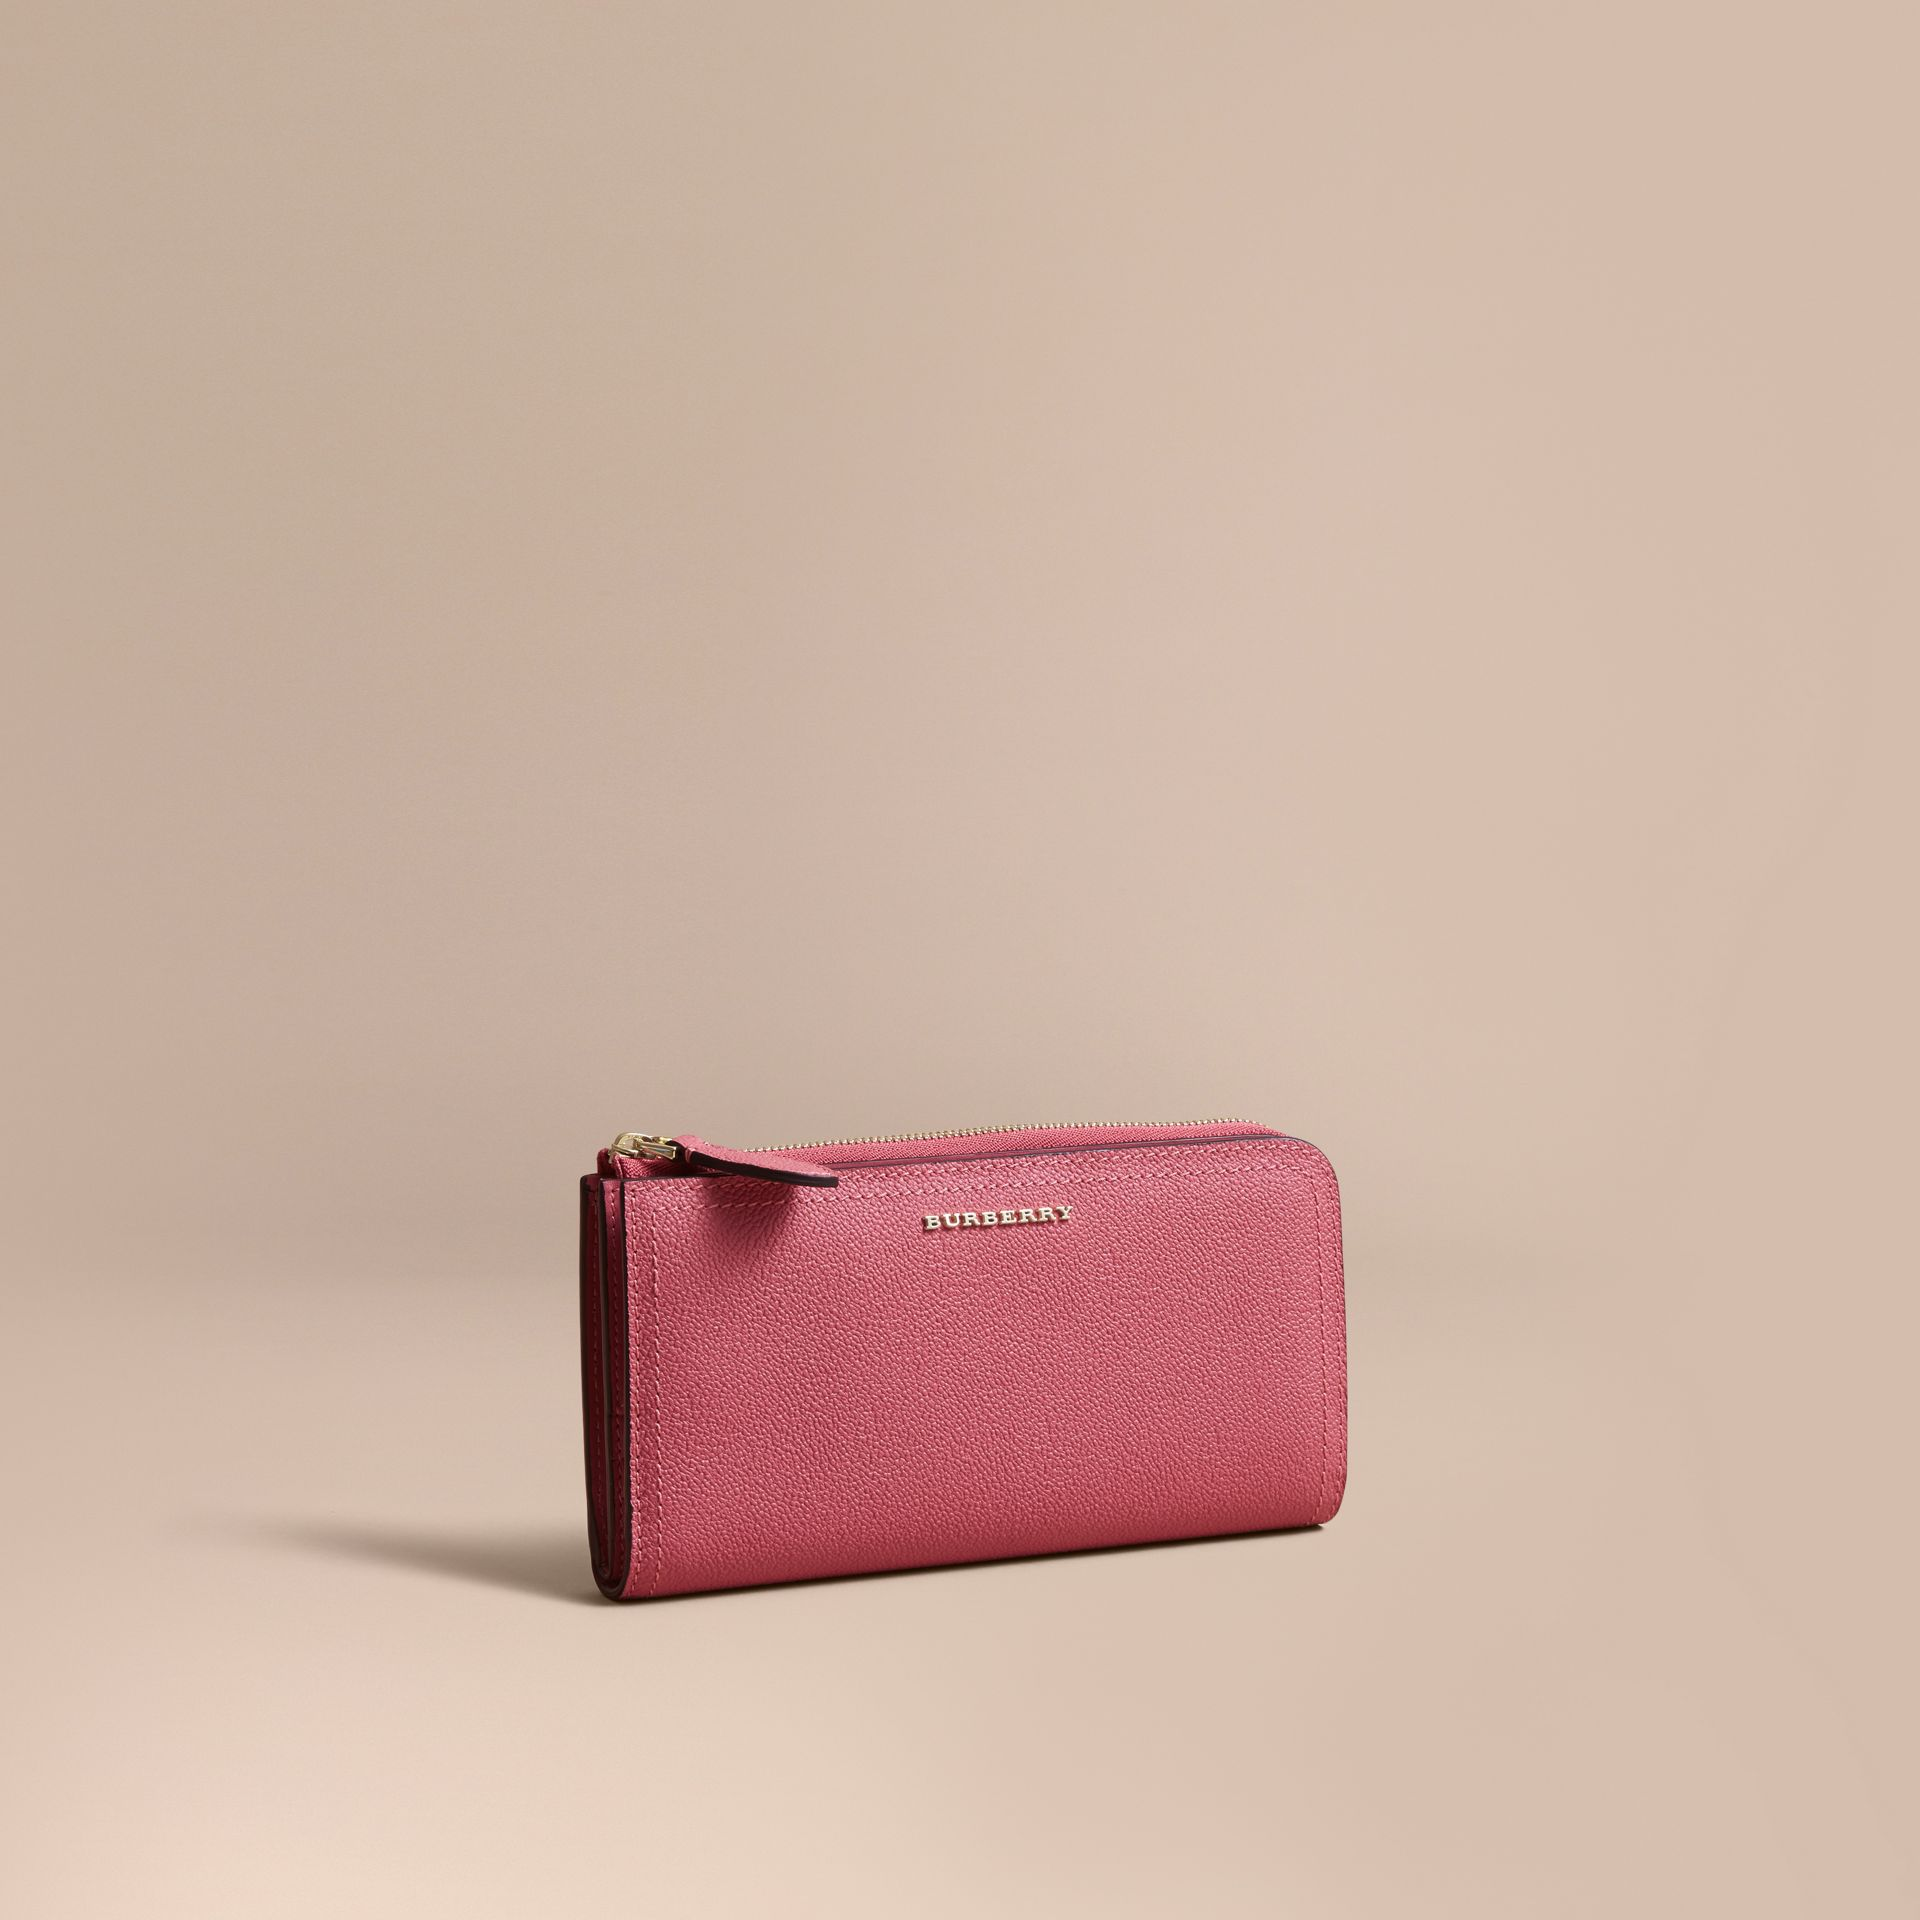 Grainy Leather Ziparound Wallet Pink Azalea - gallery image 1